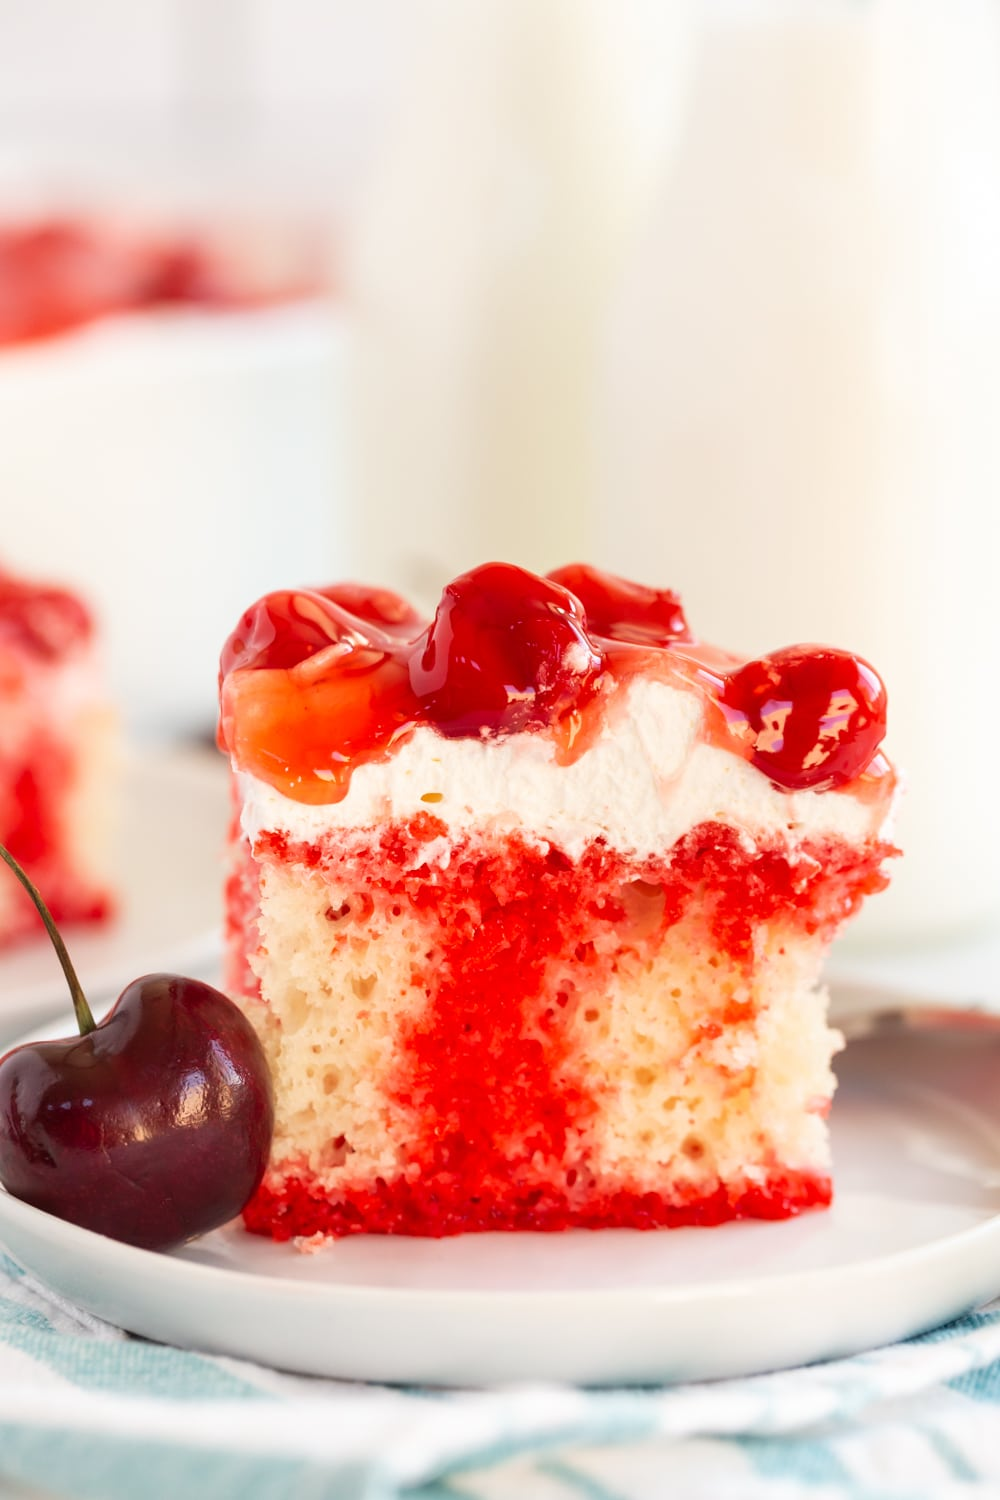 Cherry Poke Cake is a delicious simple dessert filled with cherry jello, whipped topping, and delicious cherry pie filling. It's simple and a crowd pleaser!